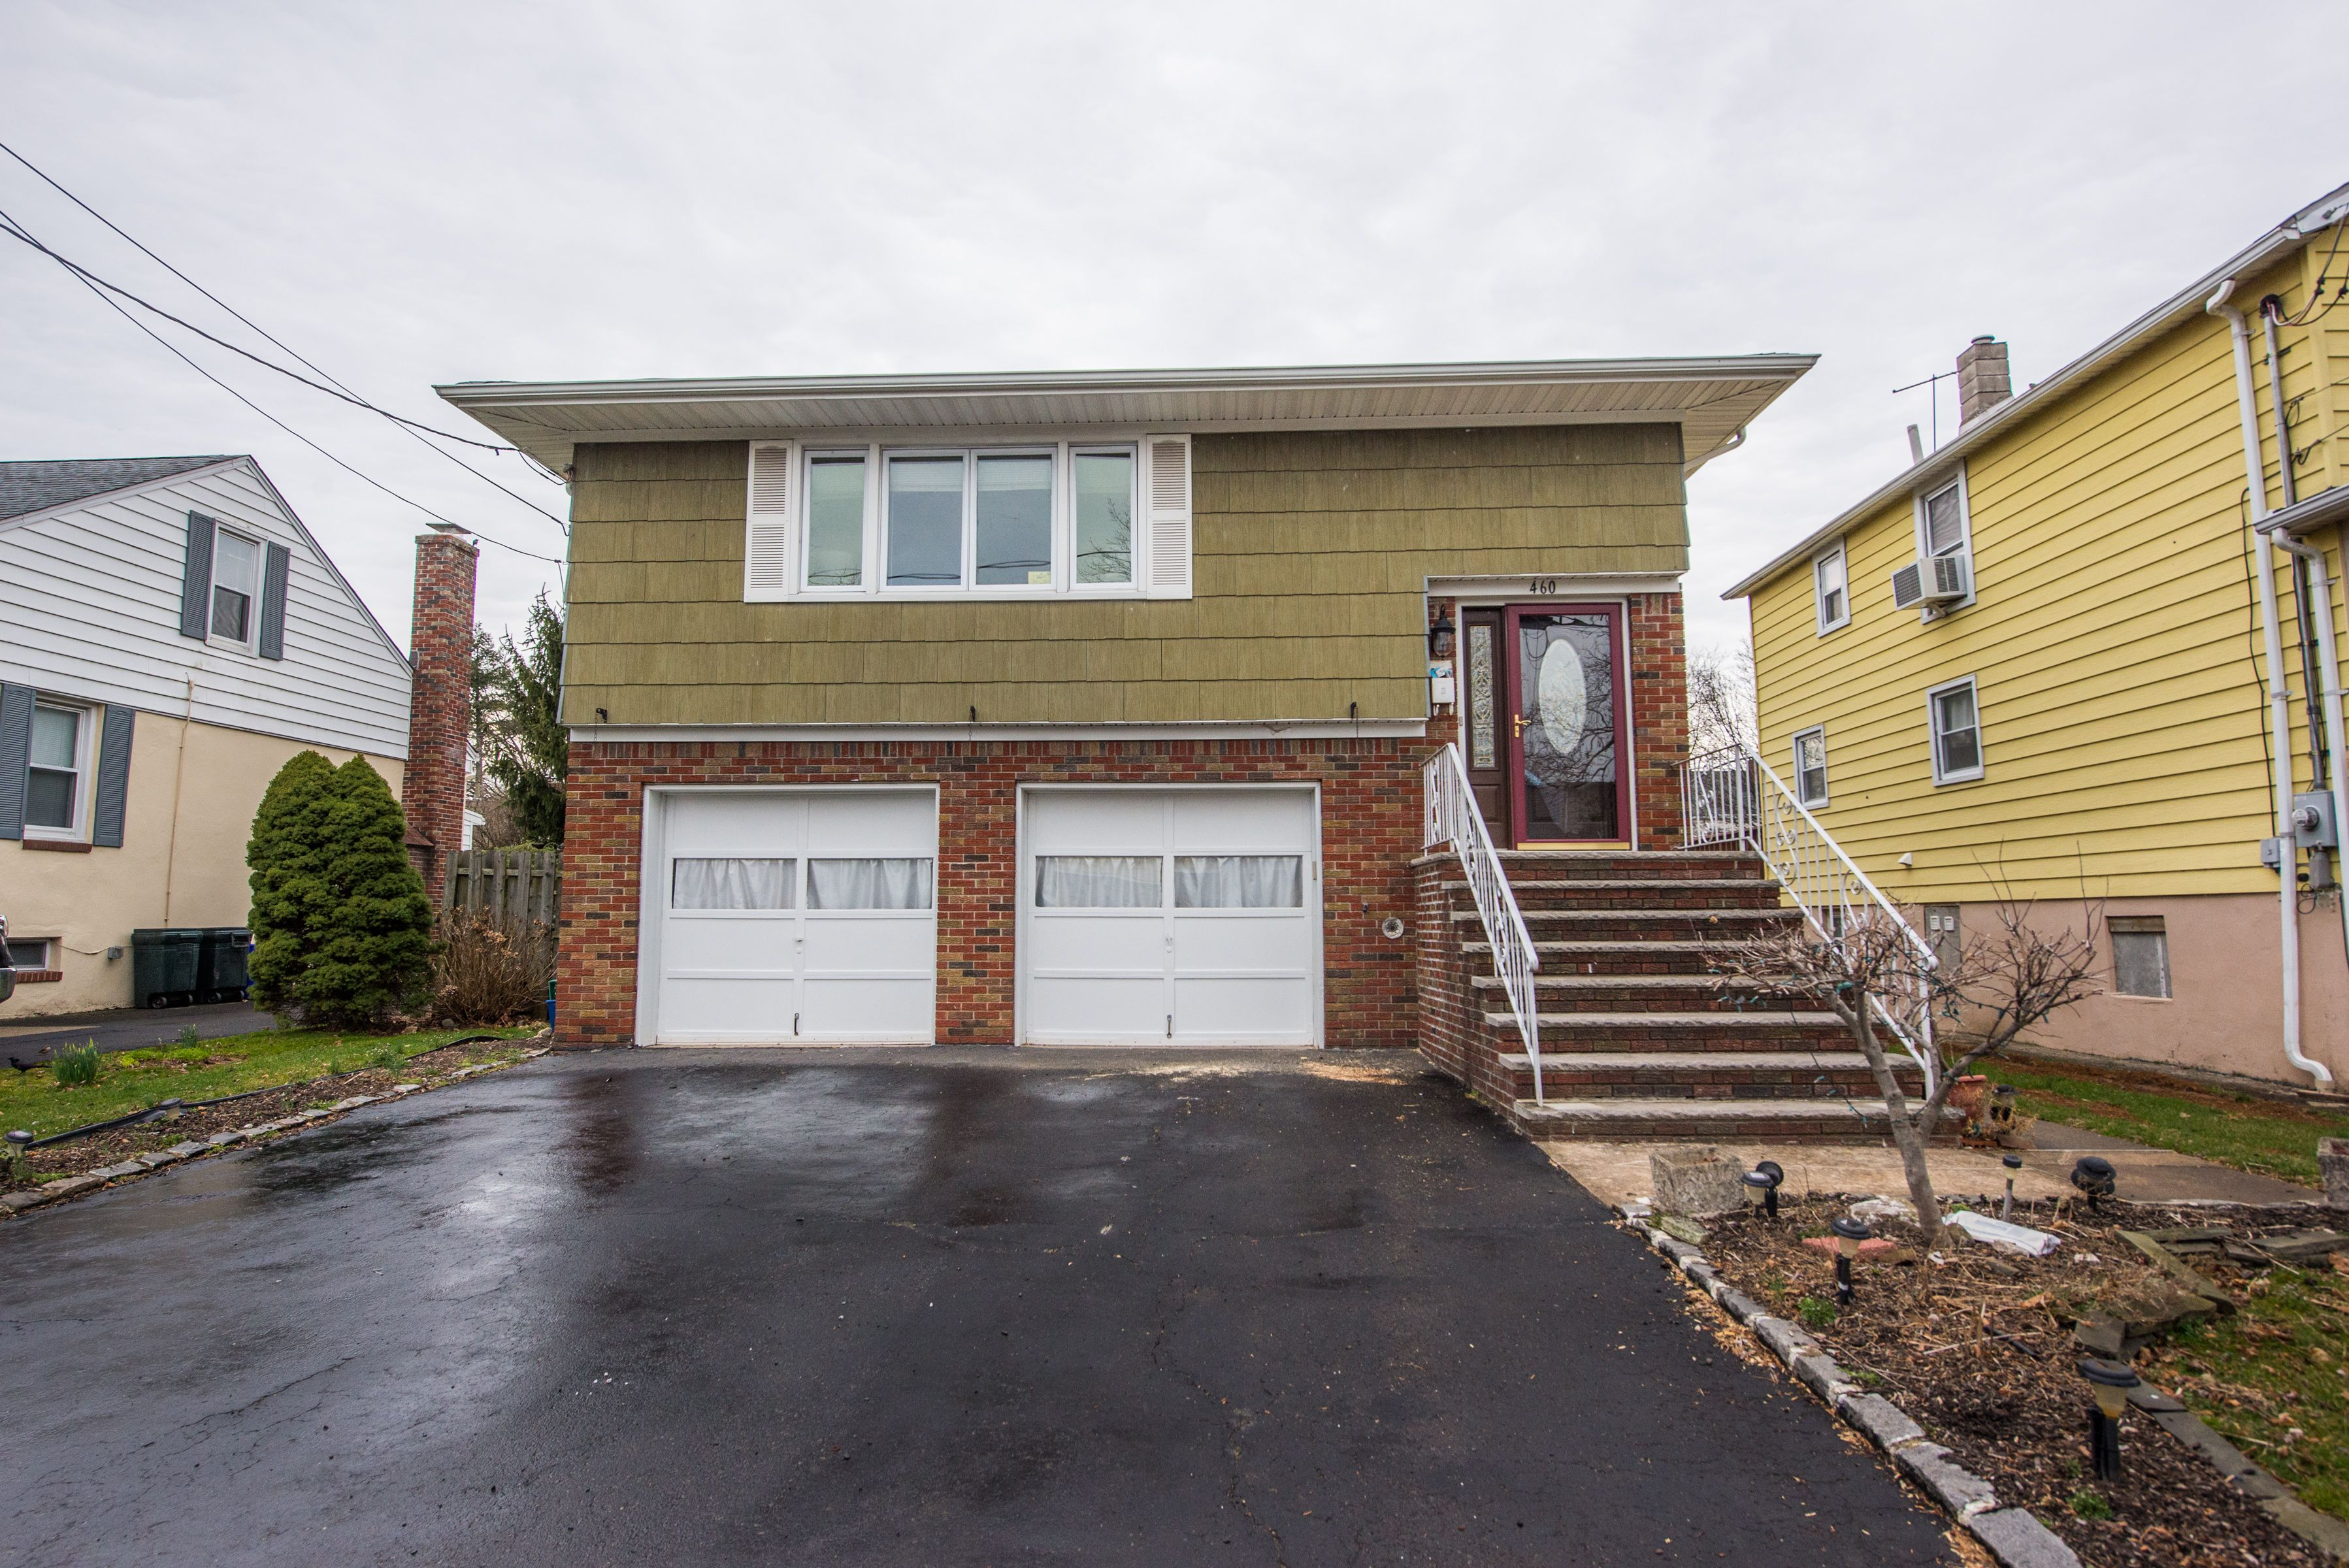 Rahway Nj Lots Of House For The Price Great Location This Home Features Large Living Room With Hardwood Floors For Real Estate Nj Large Living Room Home